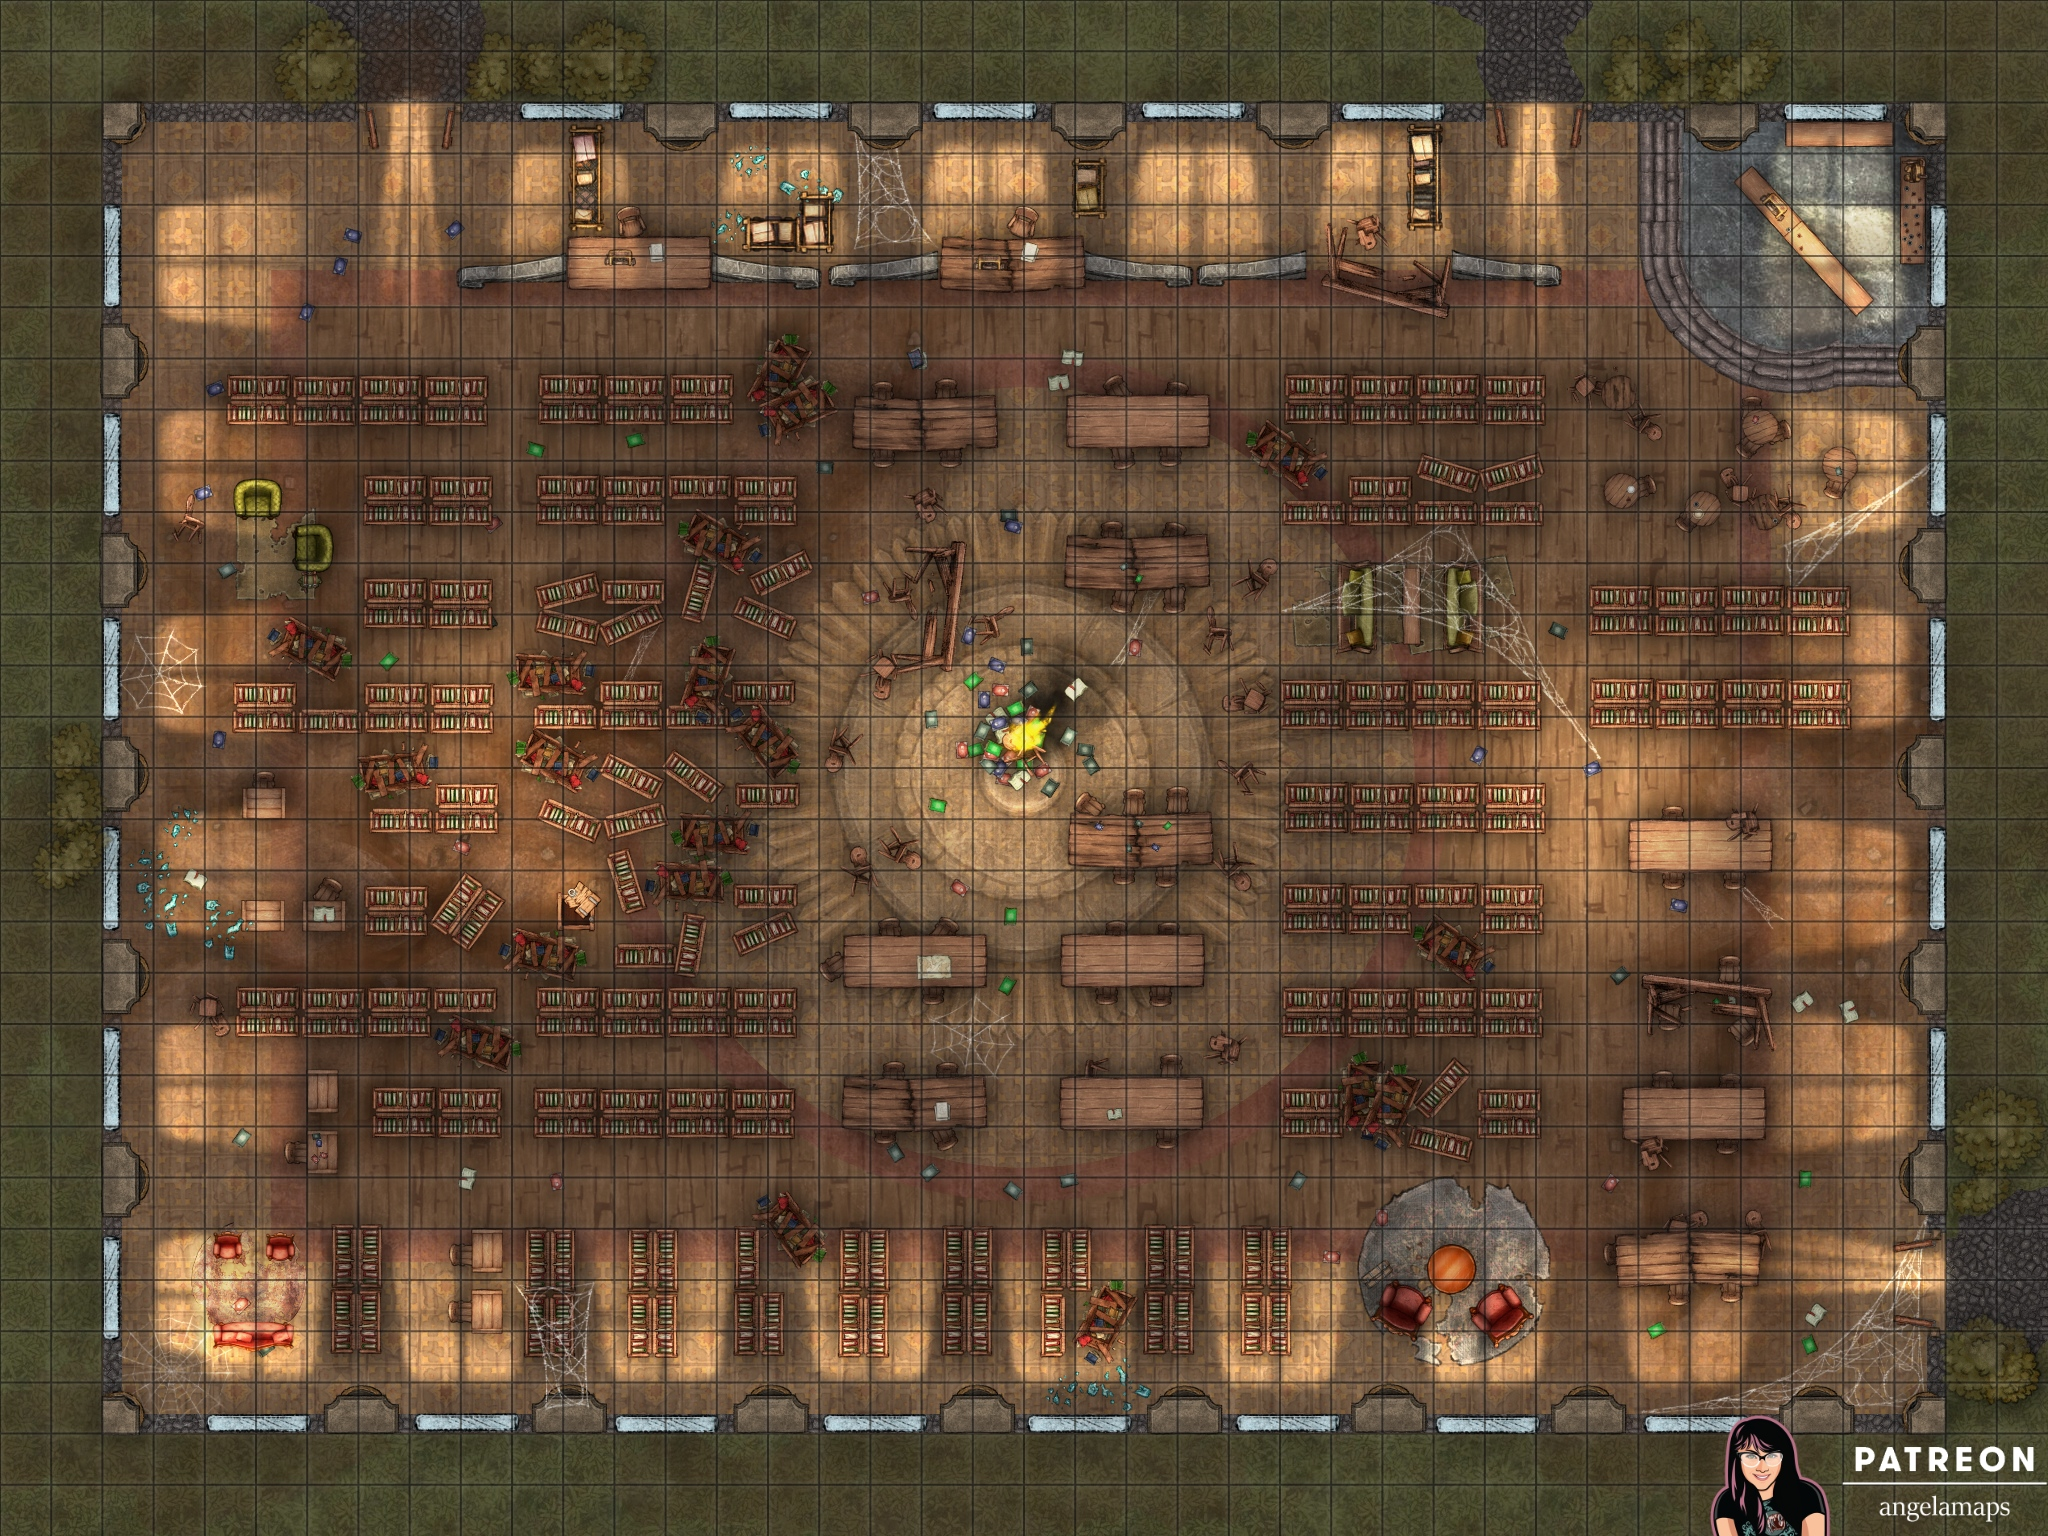 Destroyed library battle map encounter for ttrpgs like D&D and pathfinder